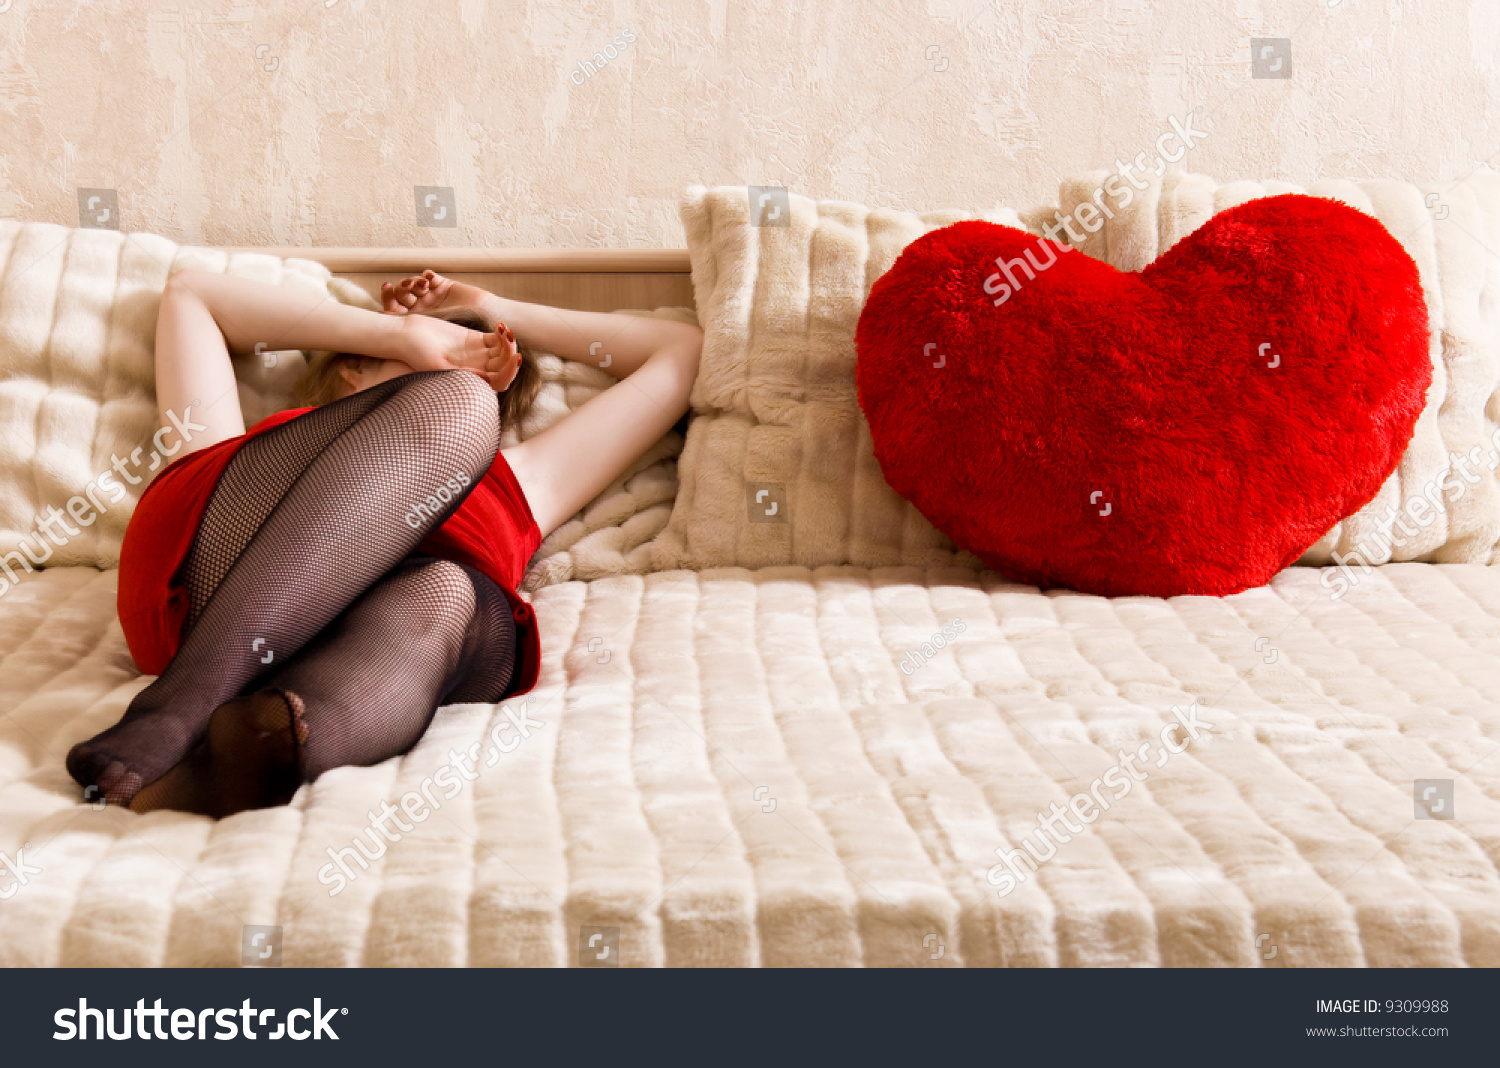 young woman resting on a bed and heart shaped pillow concept image about unrequited love